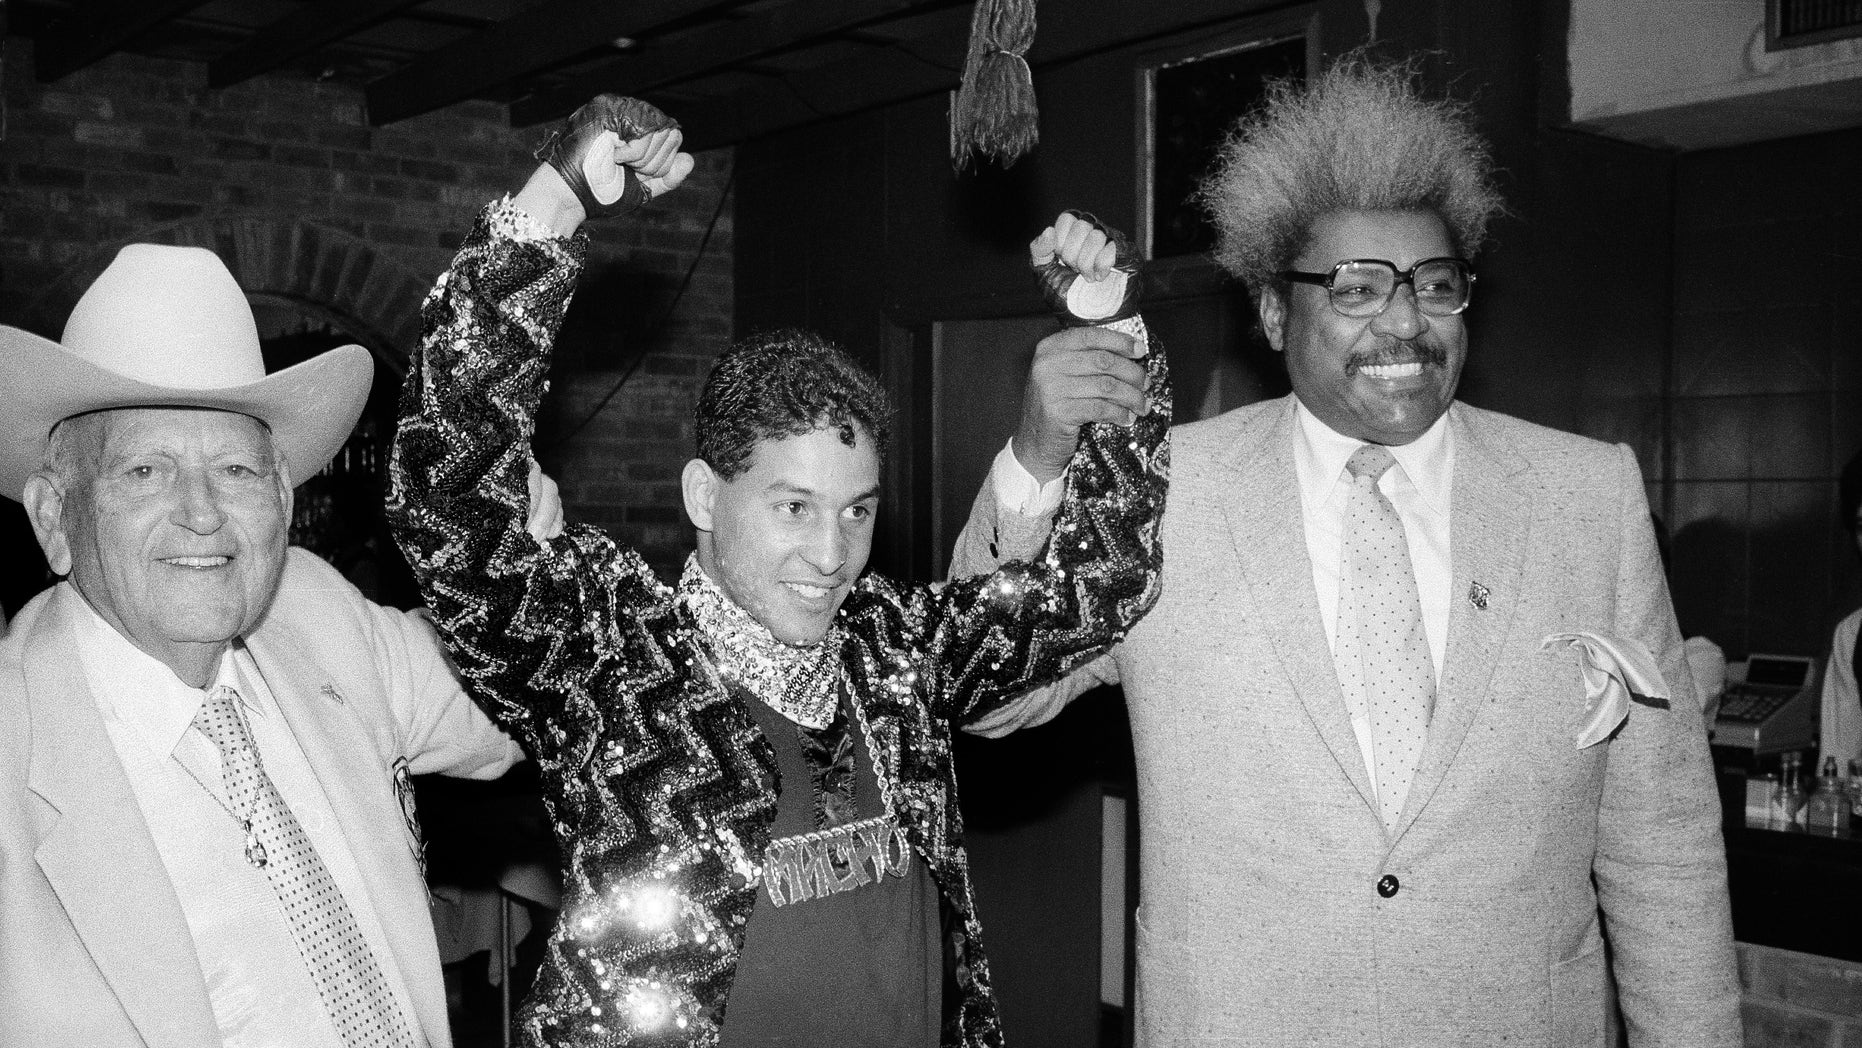 """In this Dec. 9, 1986 file photo, Hector """"Macho"""" Camacho WBC lightweight boxing champion, is escorted by Marty Cohen, left, and boxing promoter Don King, right, during a news conference in New York."""